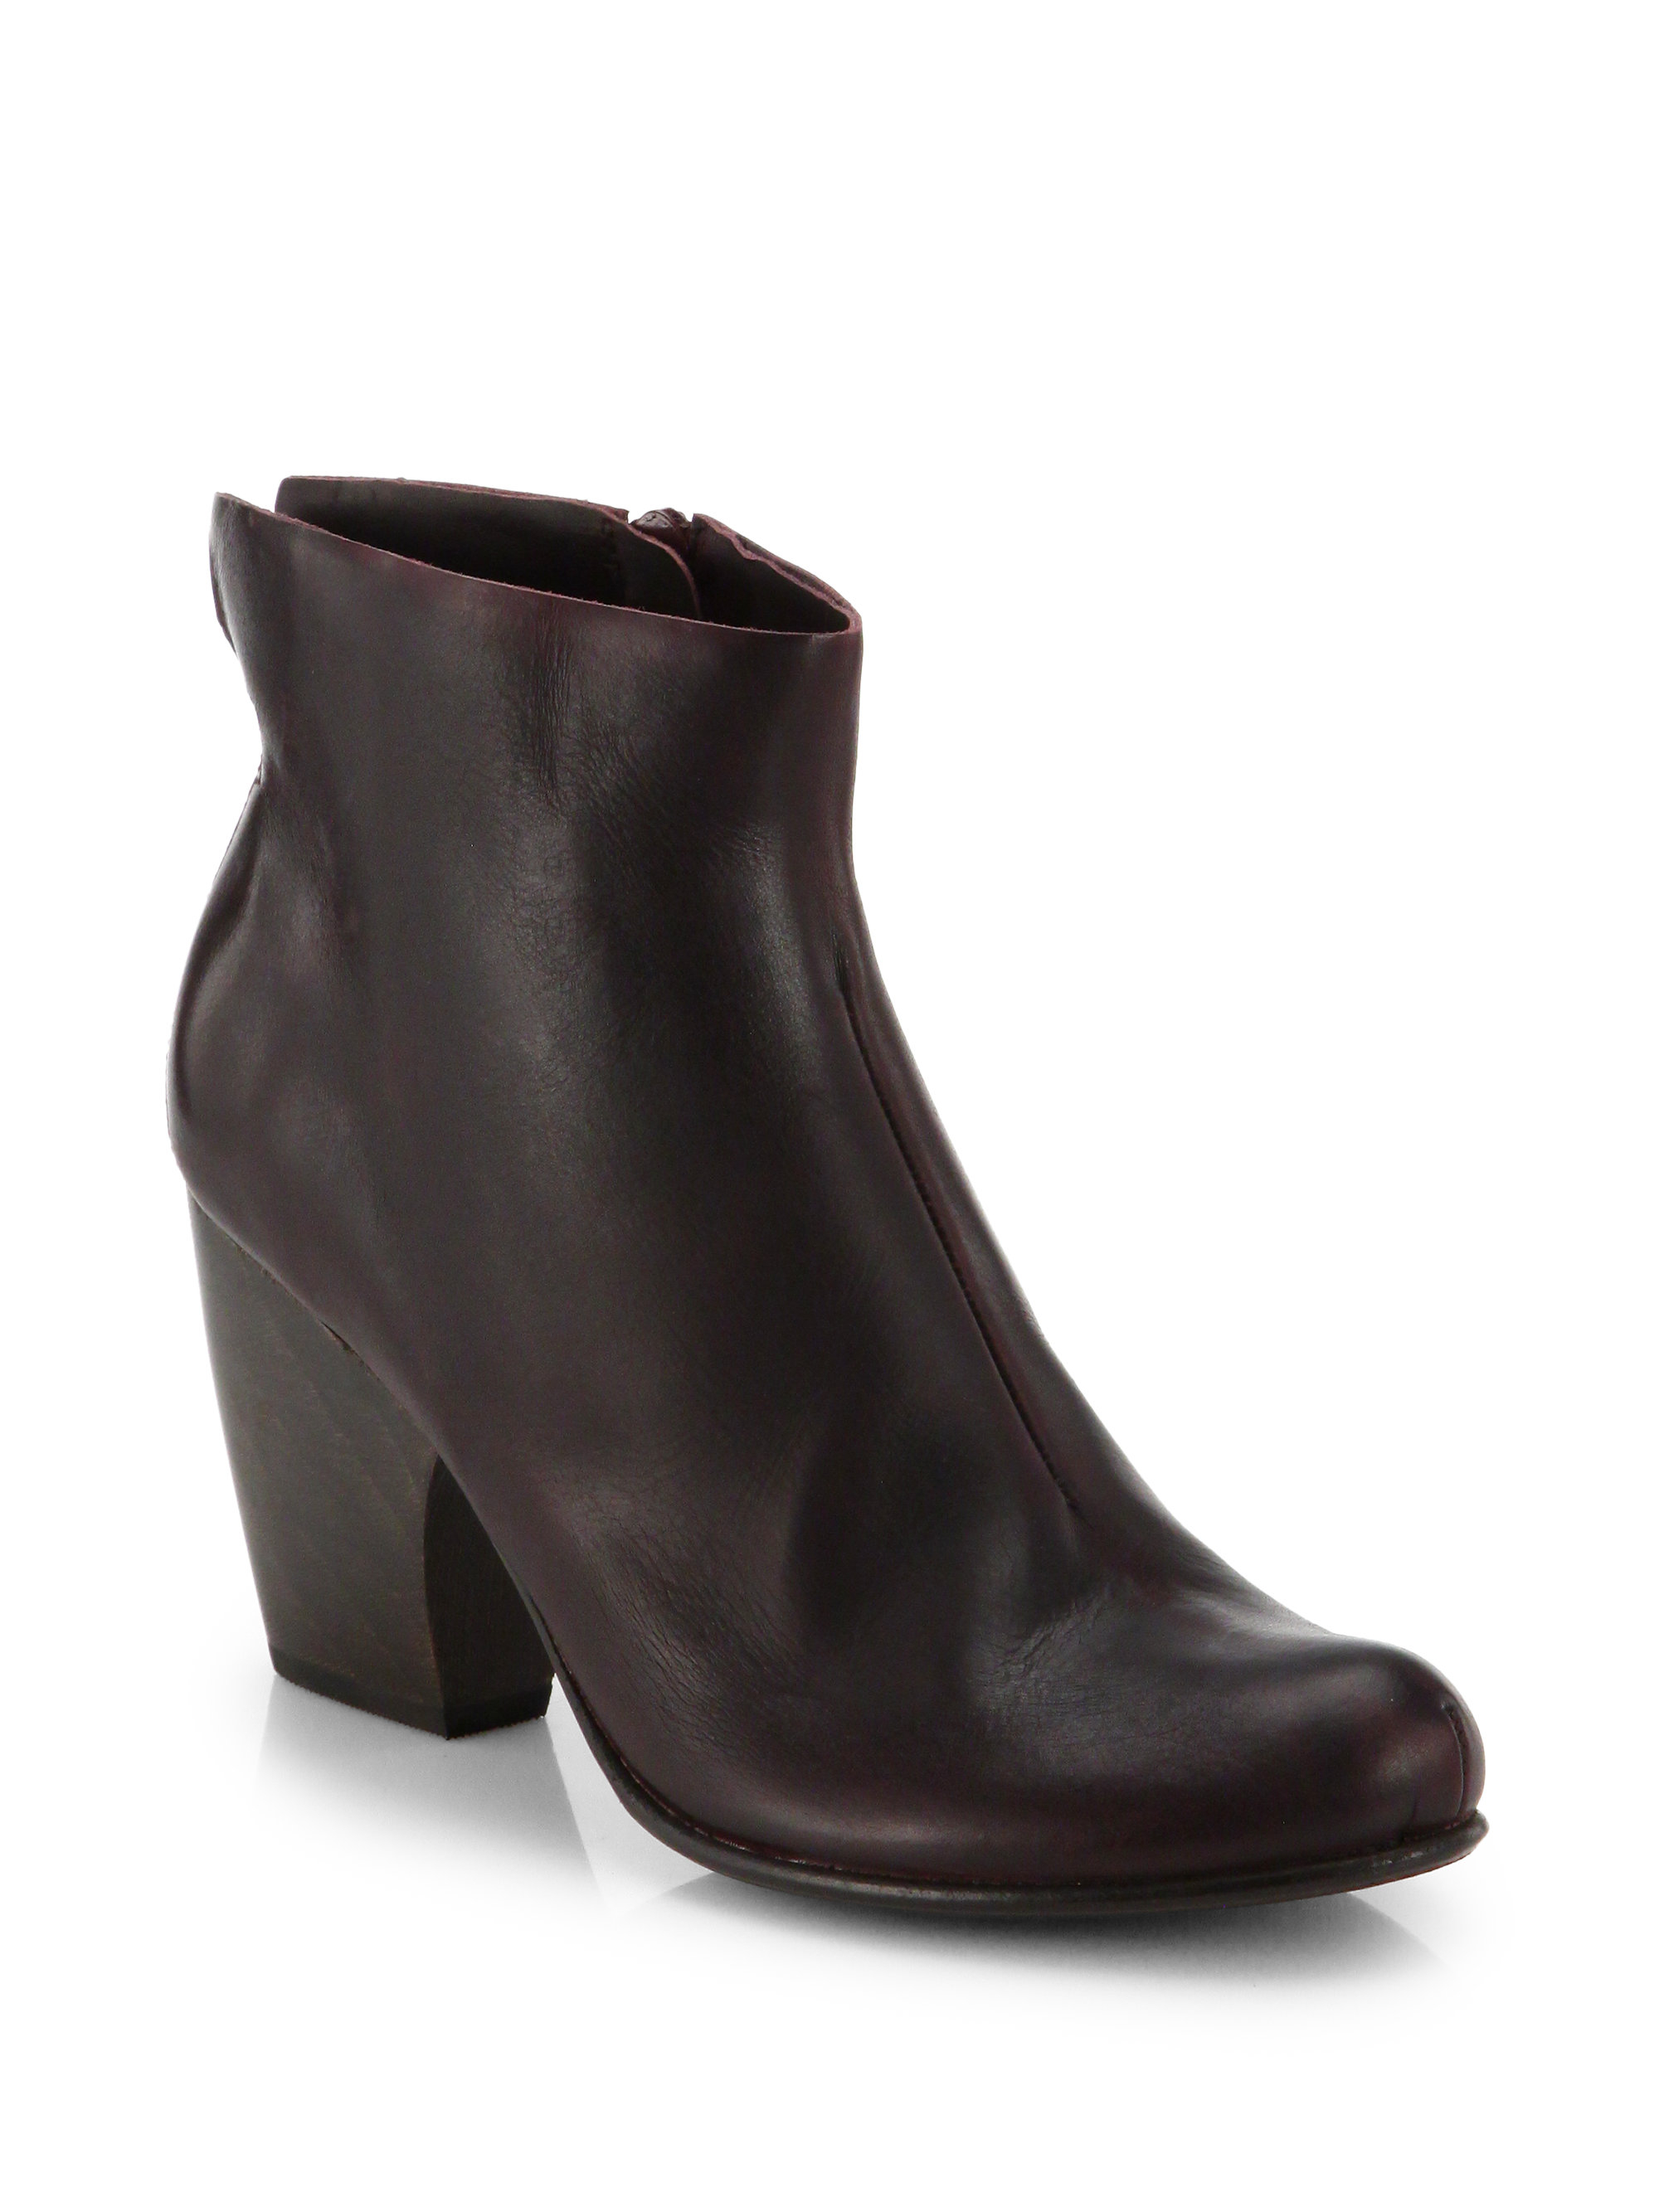 coclico vita suede flared ankle boots in purple maroon